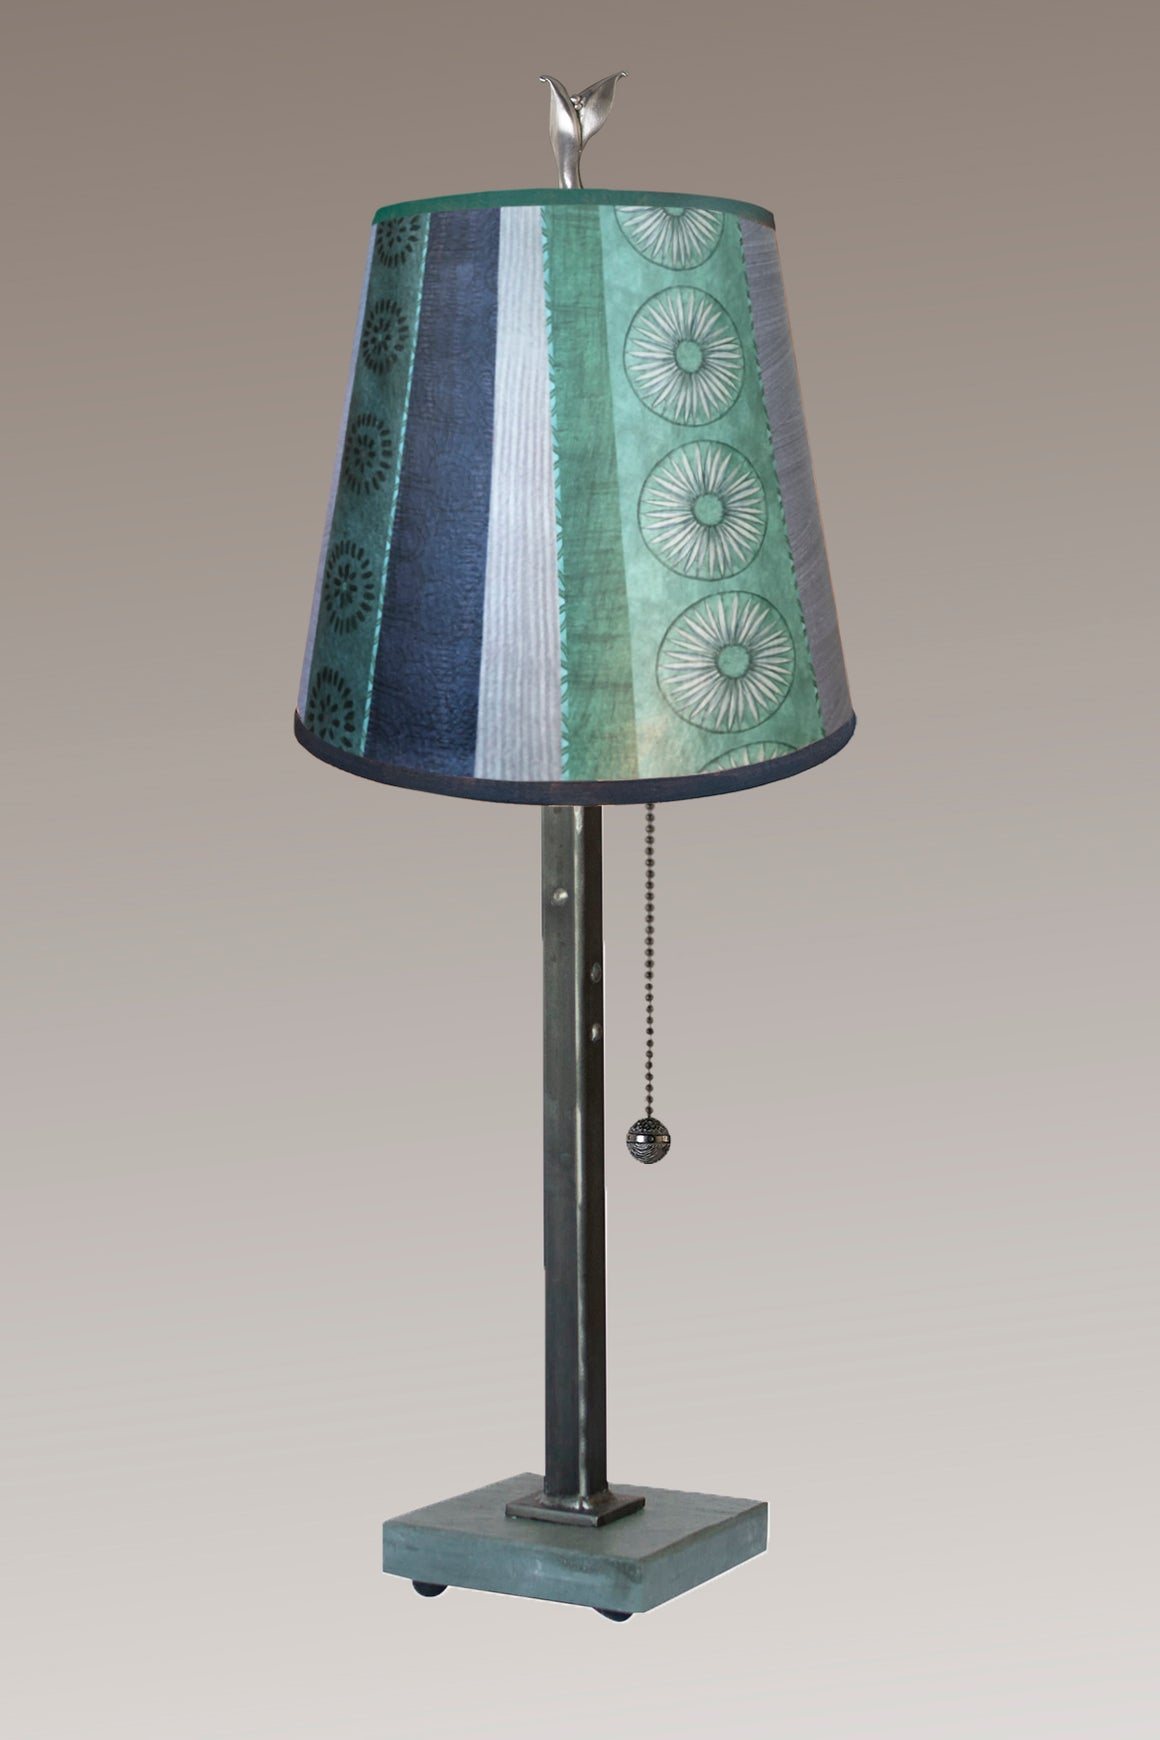 Steel Table Lamp on Vermont Slate Base with Small Drum Shade in Serape Waters